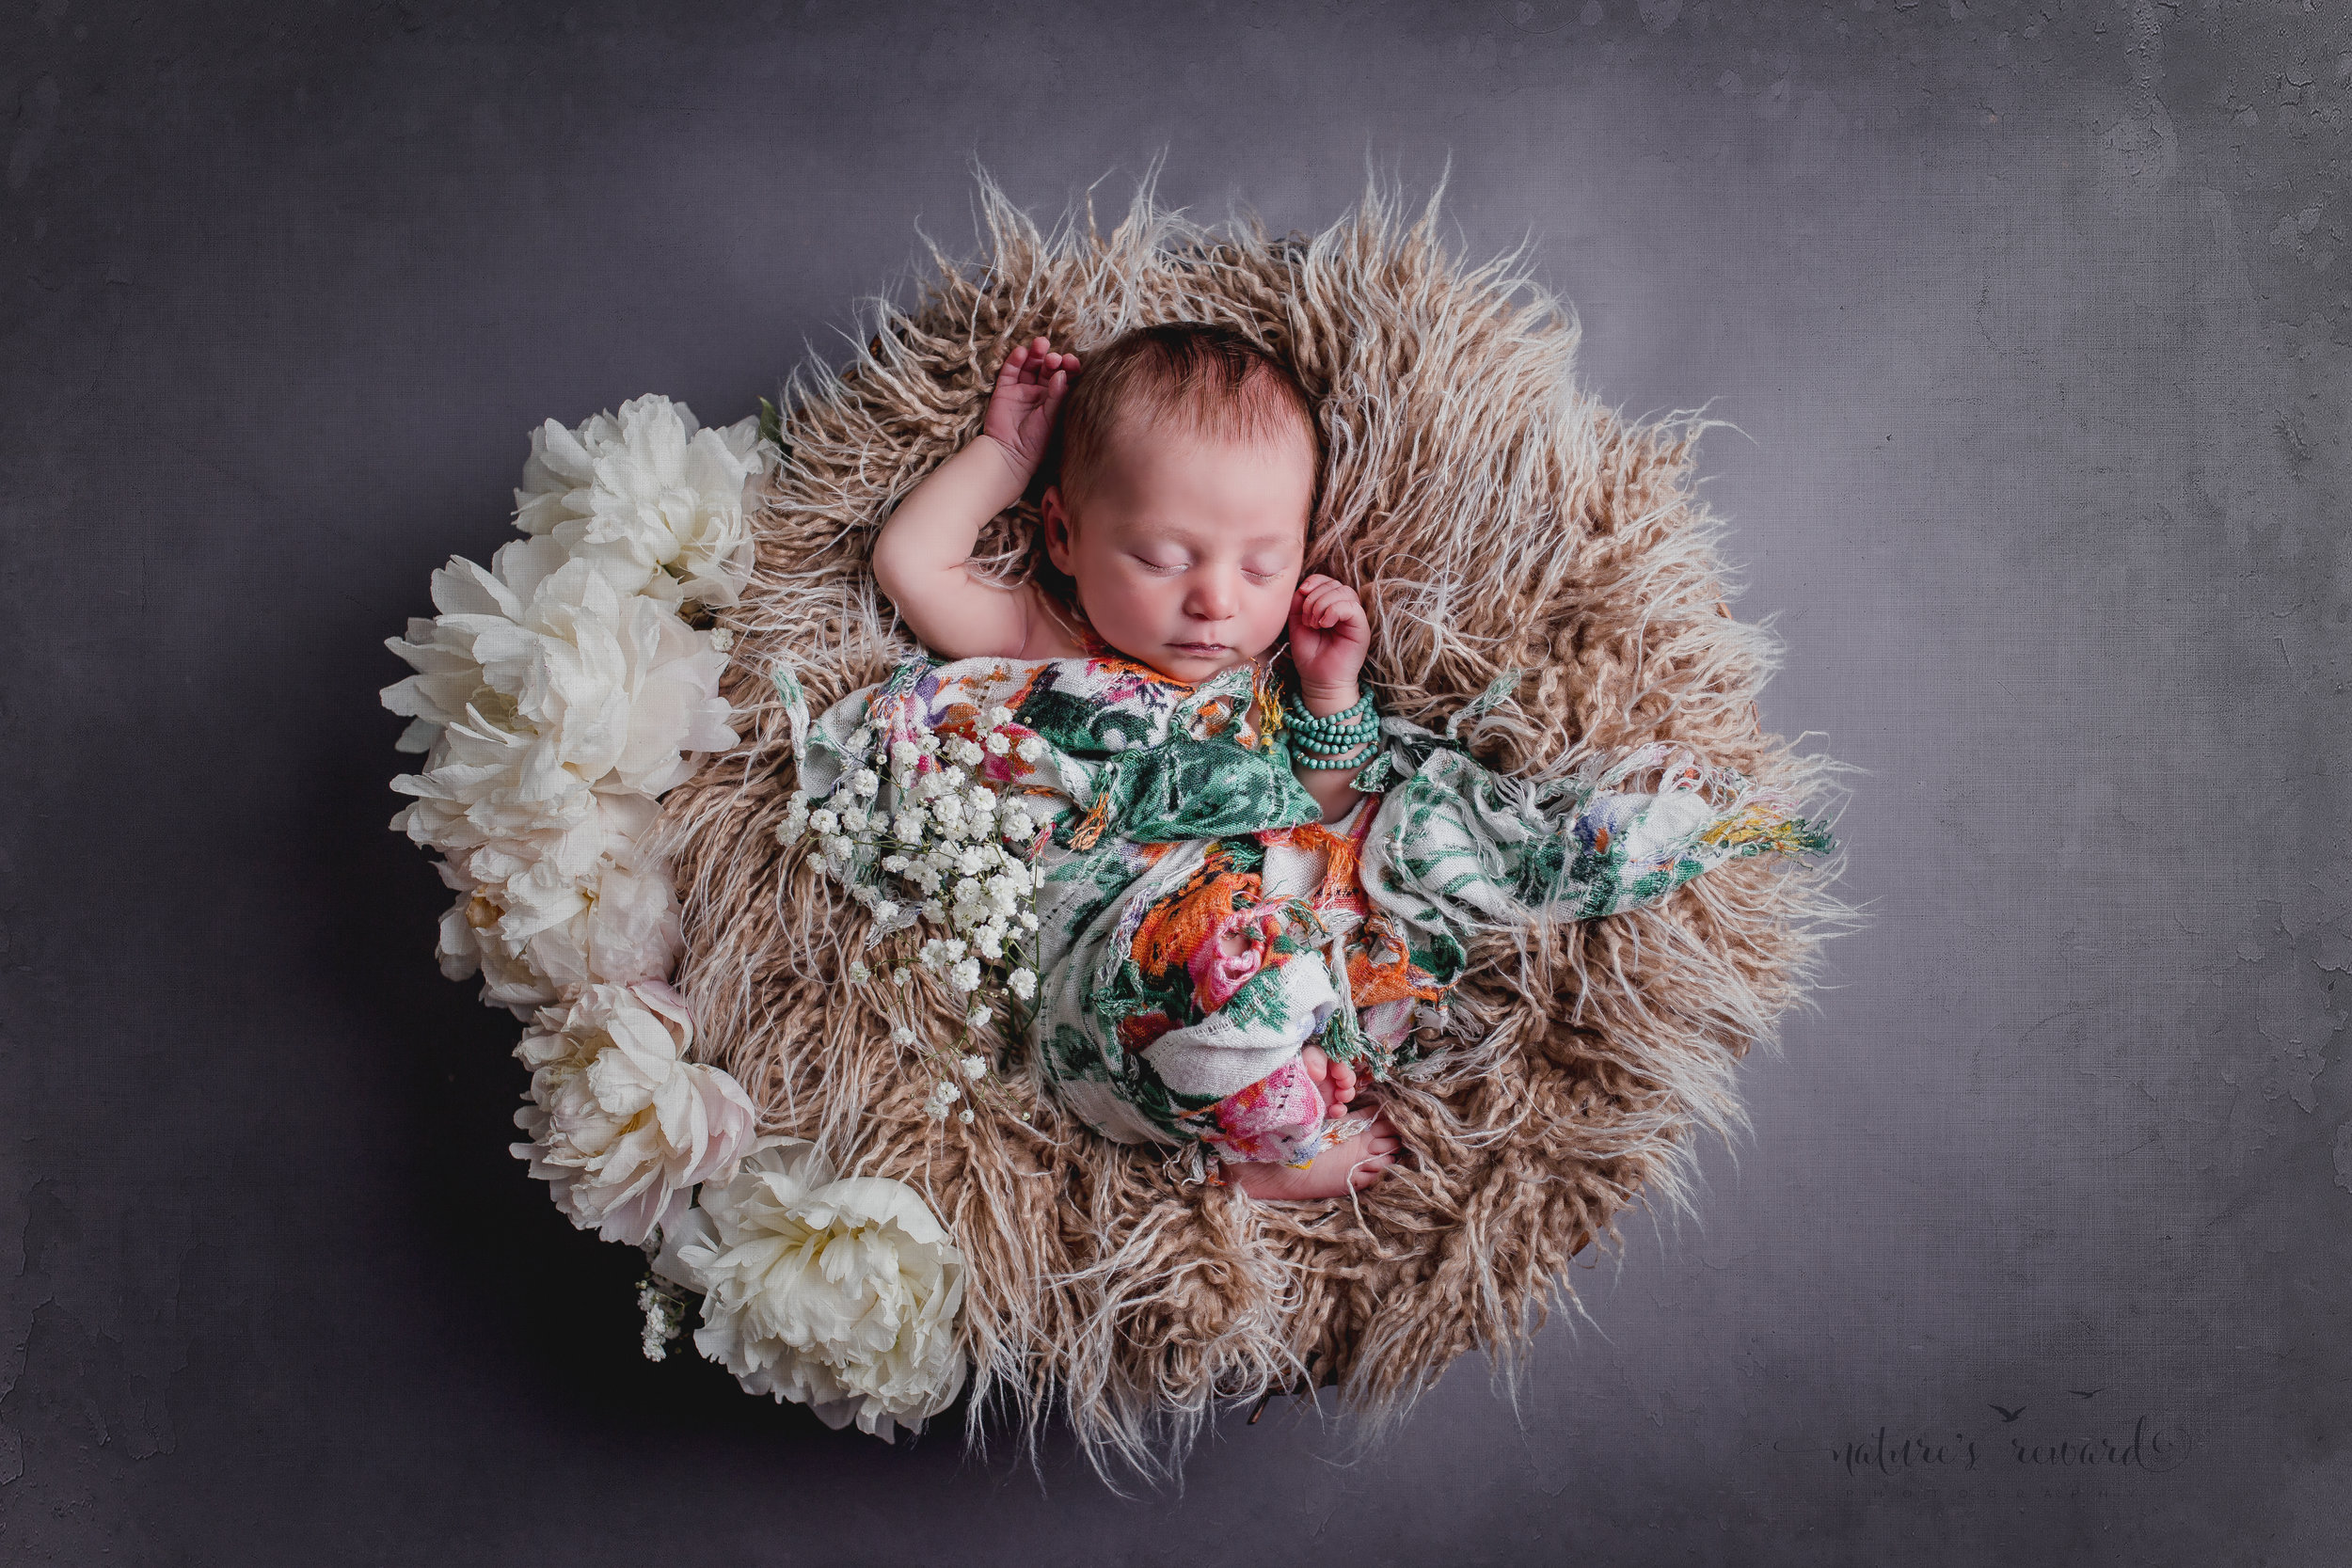 Newborn baby portrait in whites and soft teal, laying on a bed of fur draped in floral.A Portrait By Nature's Reward Photography, a San Bernardino Family, Child, and Newborn Baby Photographer.